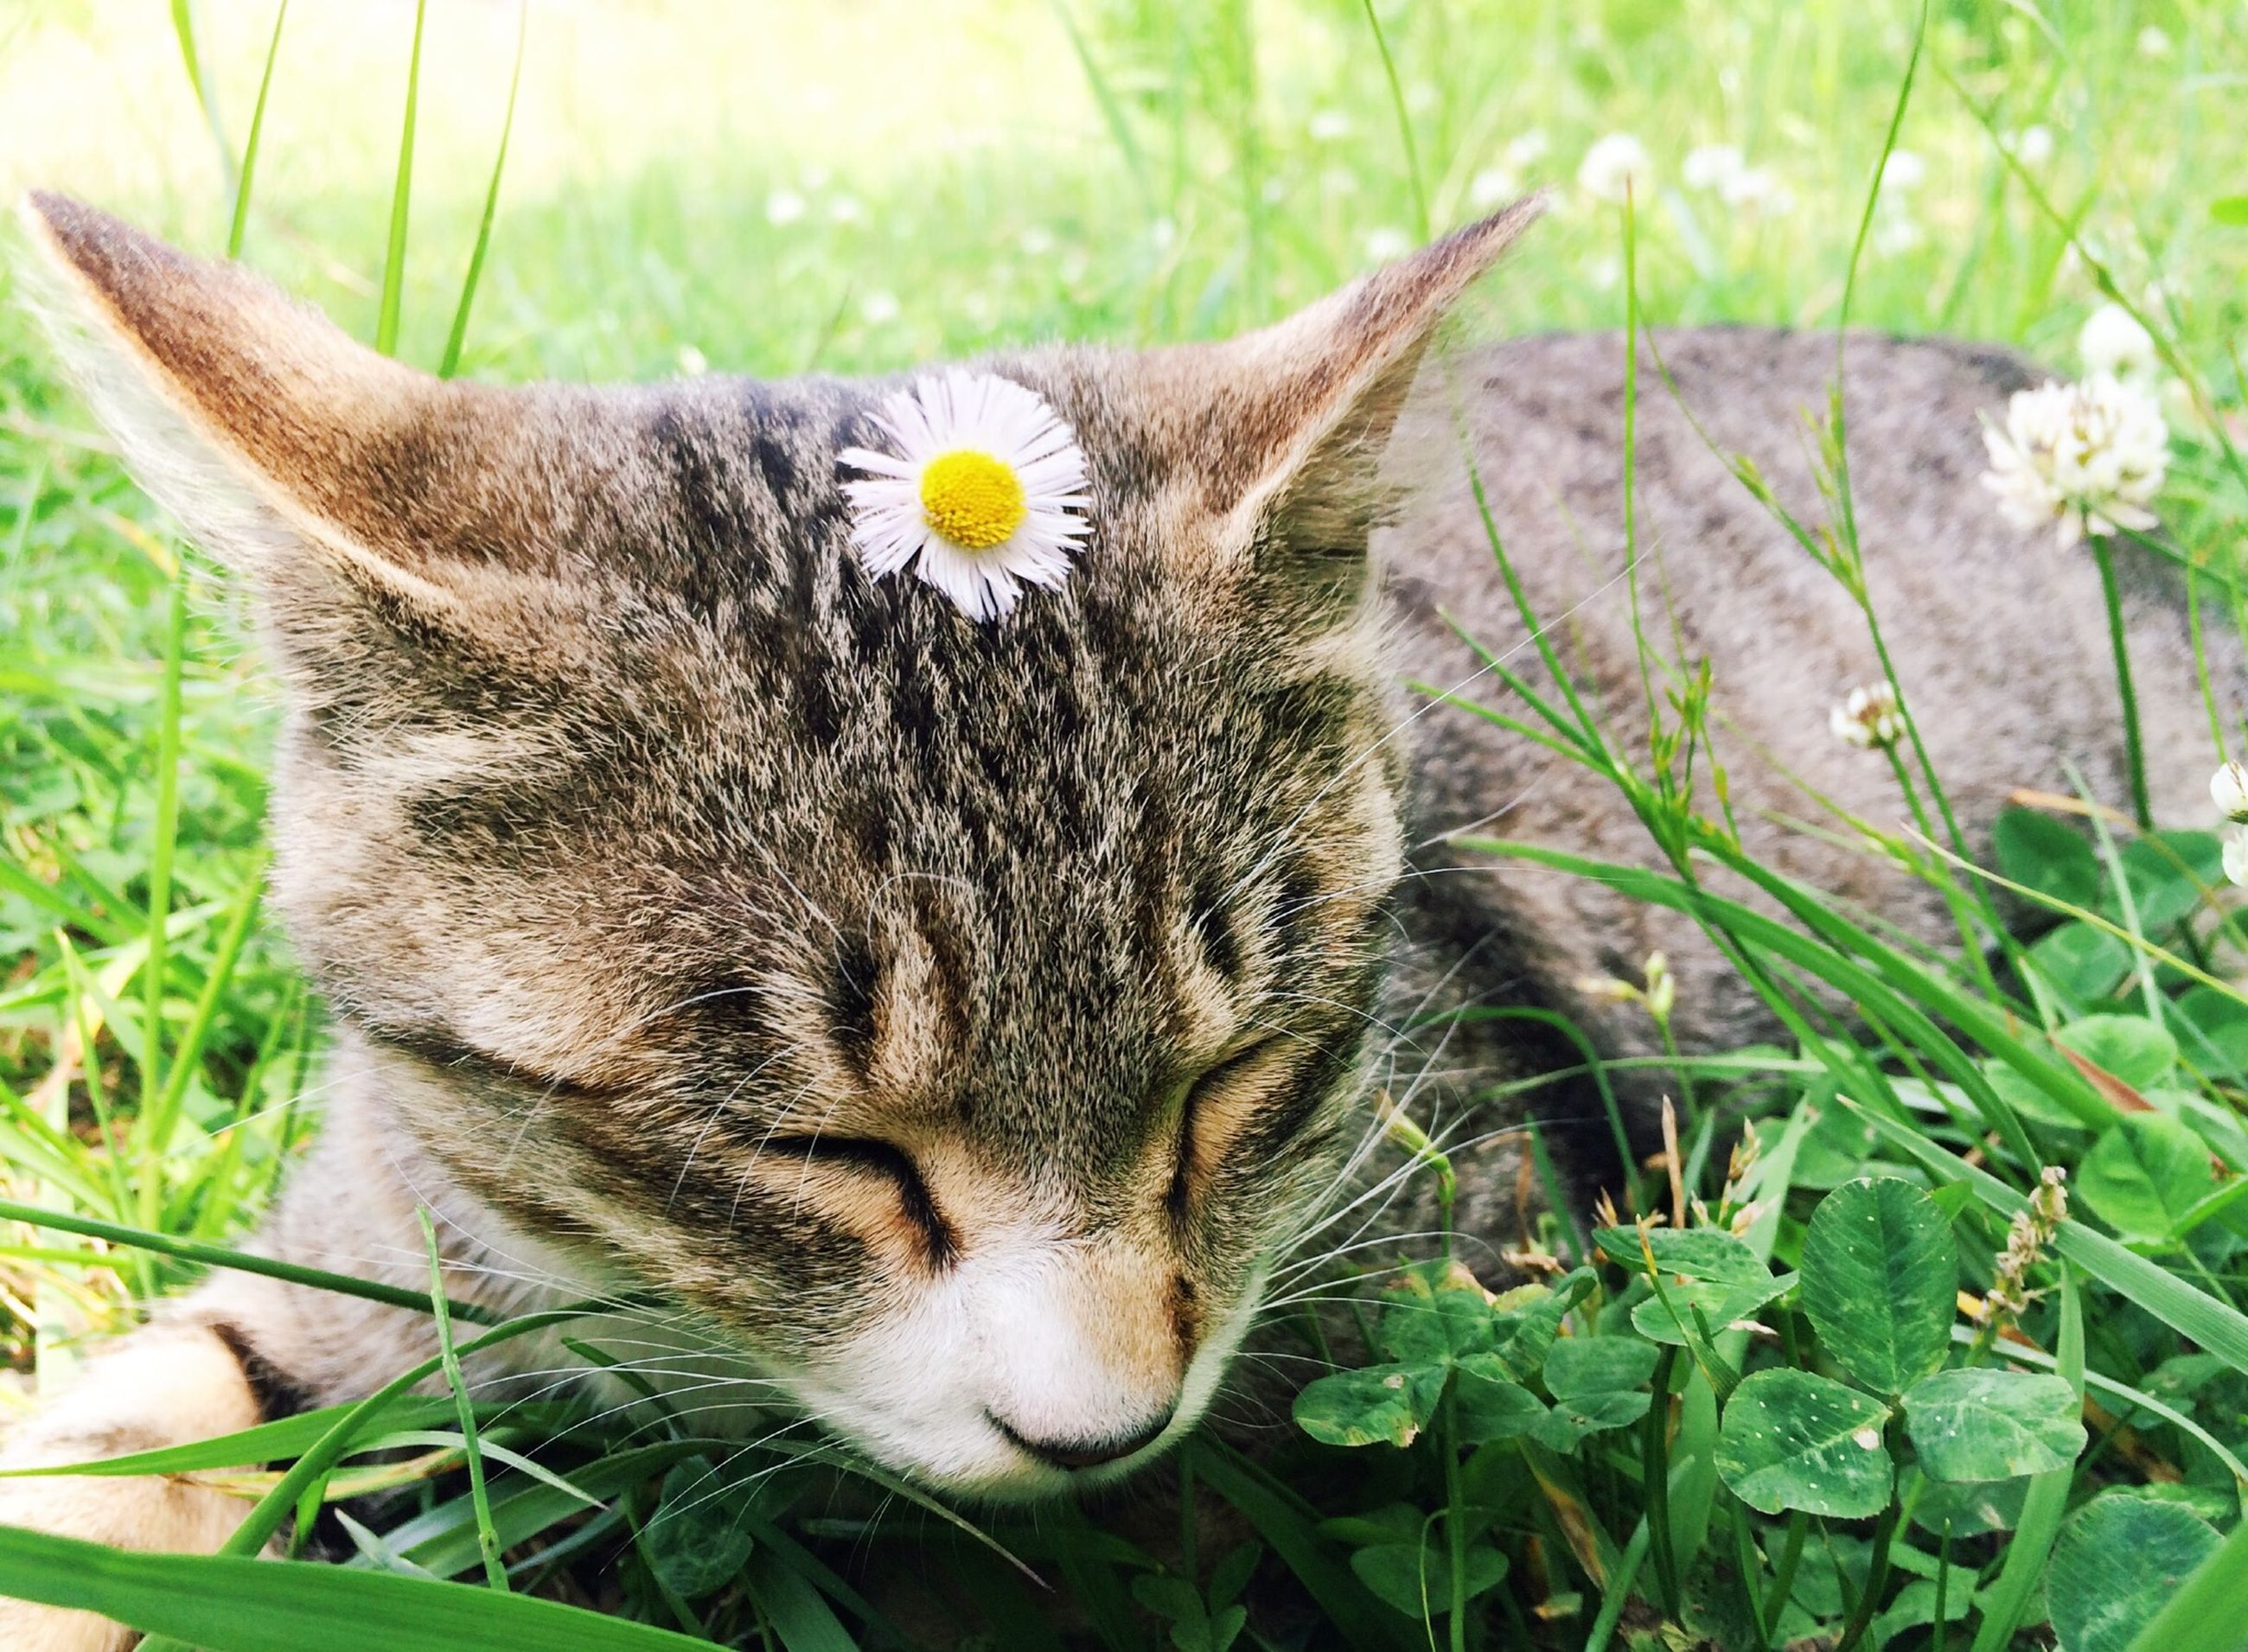 animal themes, one animal, mammal, domestic cat, feline, domestic animals, cat, whisker, pets, flower, plant, close-up, grass, growth, relaxation, focus on foreground, nature, field, lying down, resting